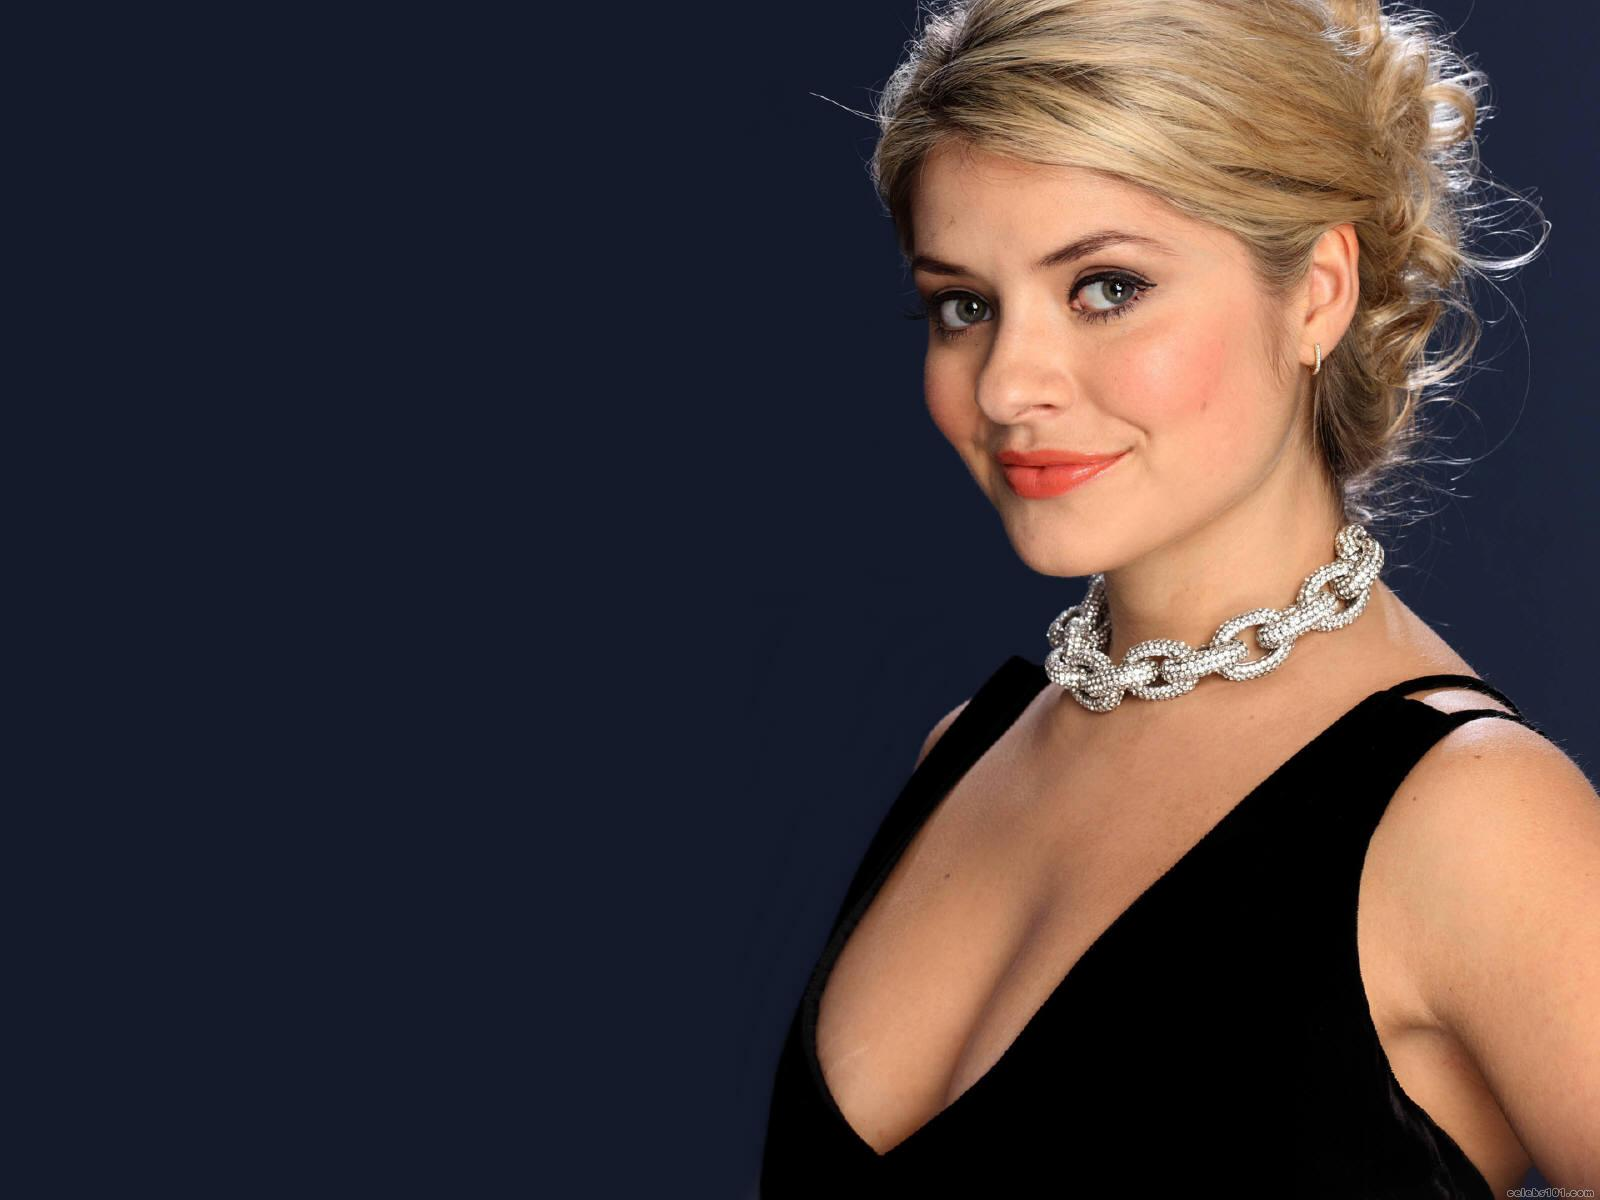 1600x1200 - Holly Willoughby Wallpapers 13